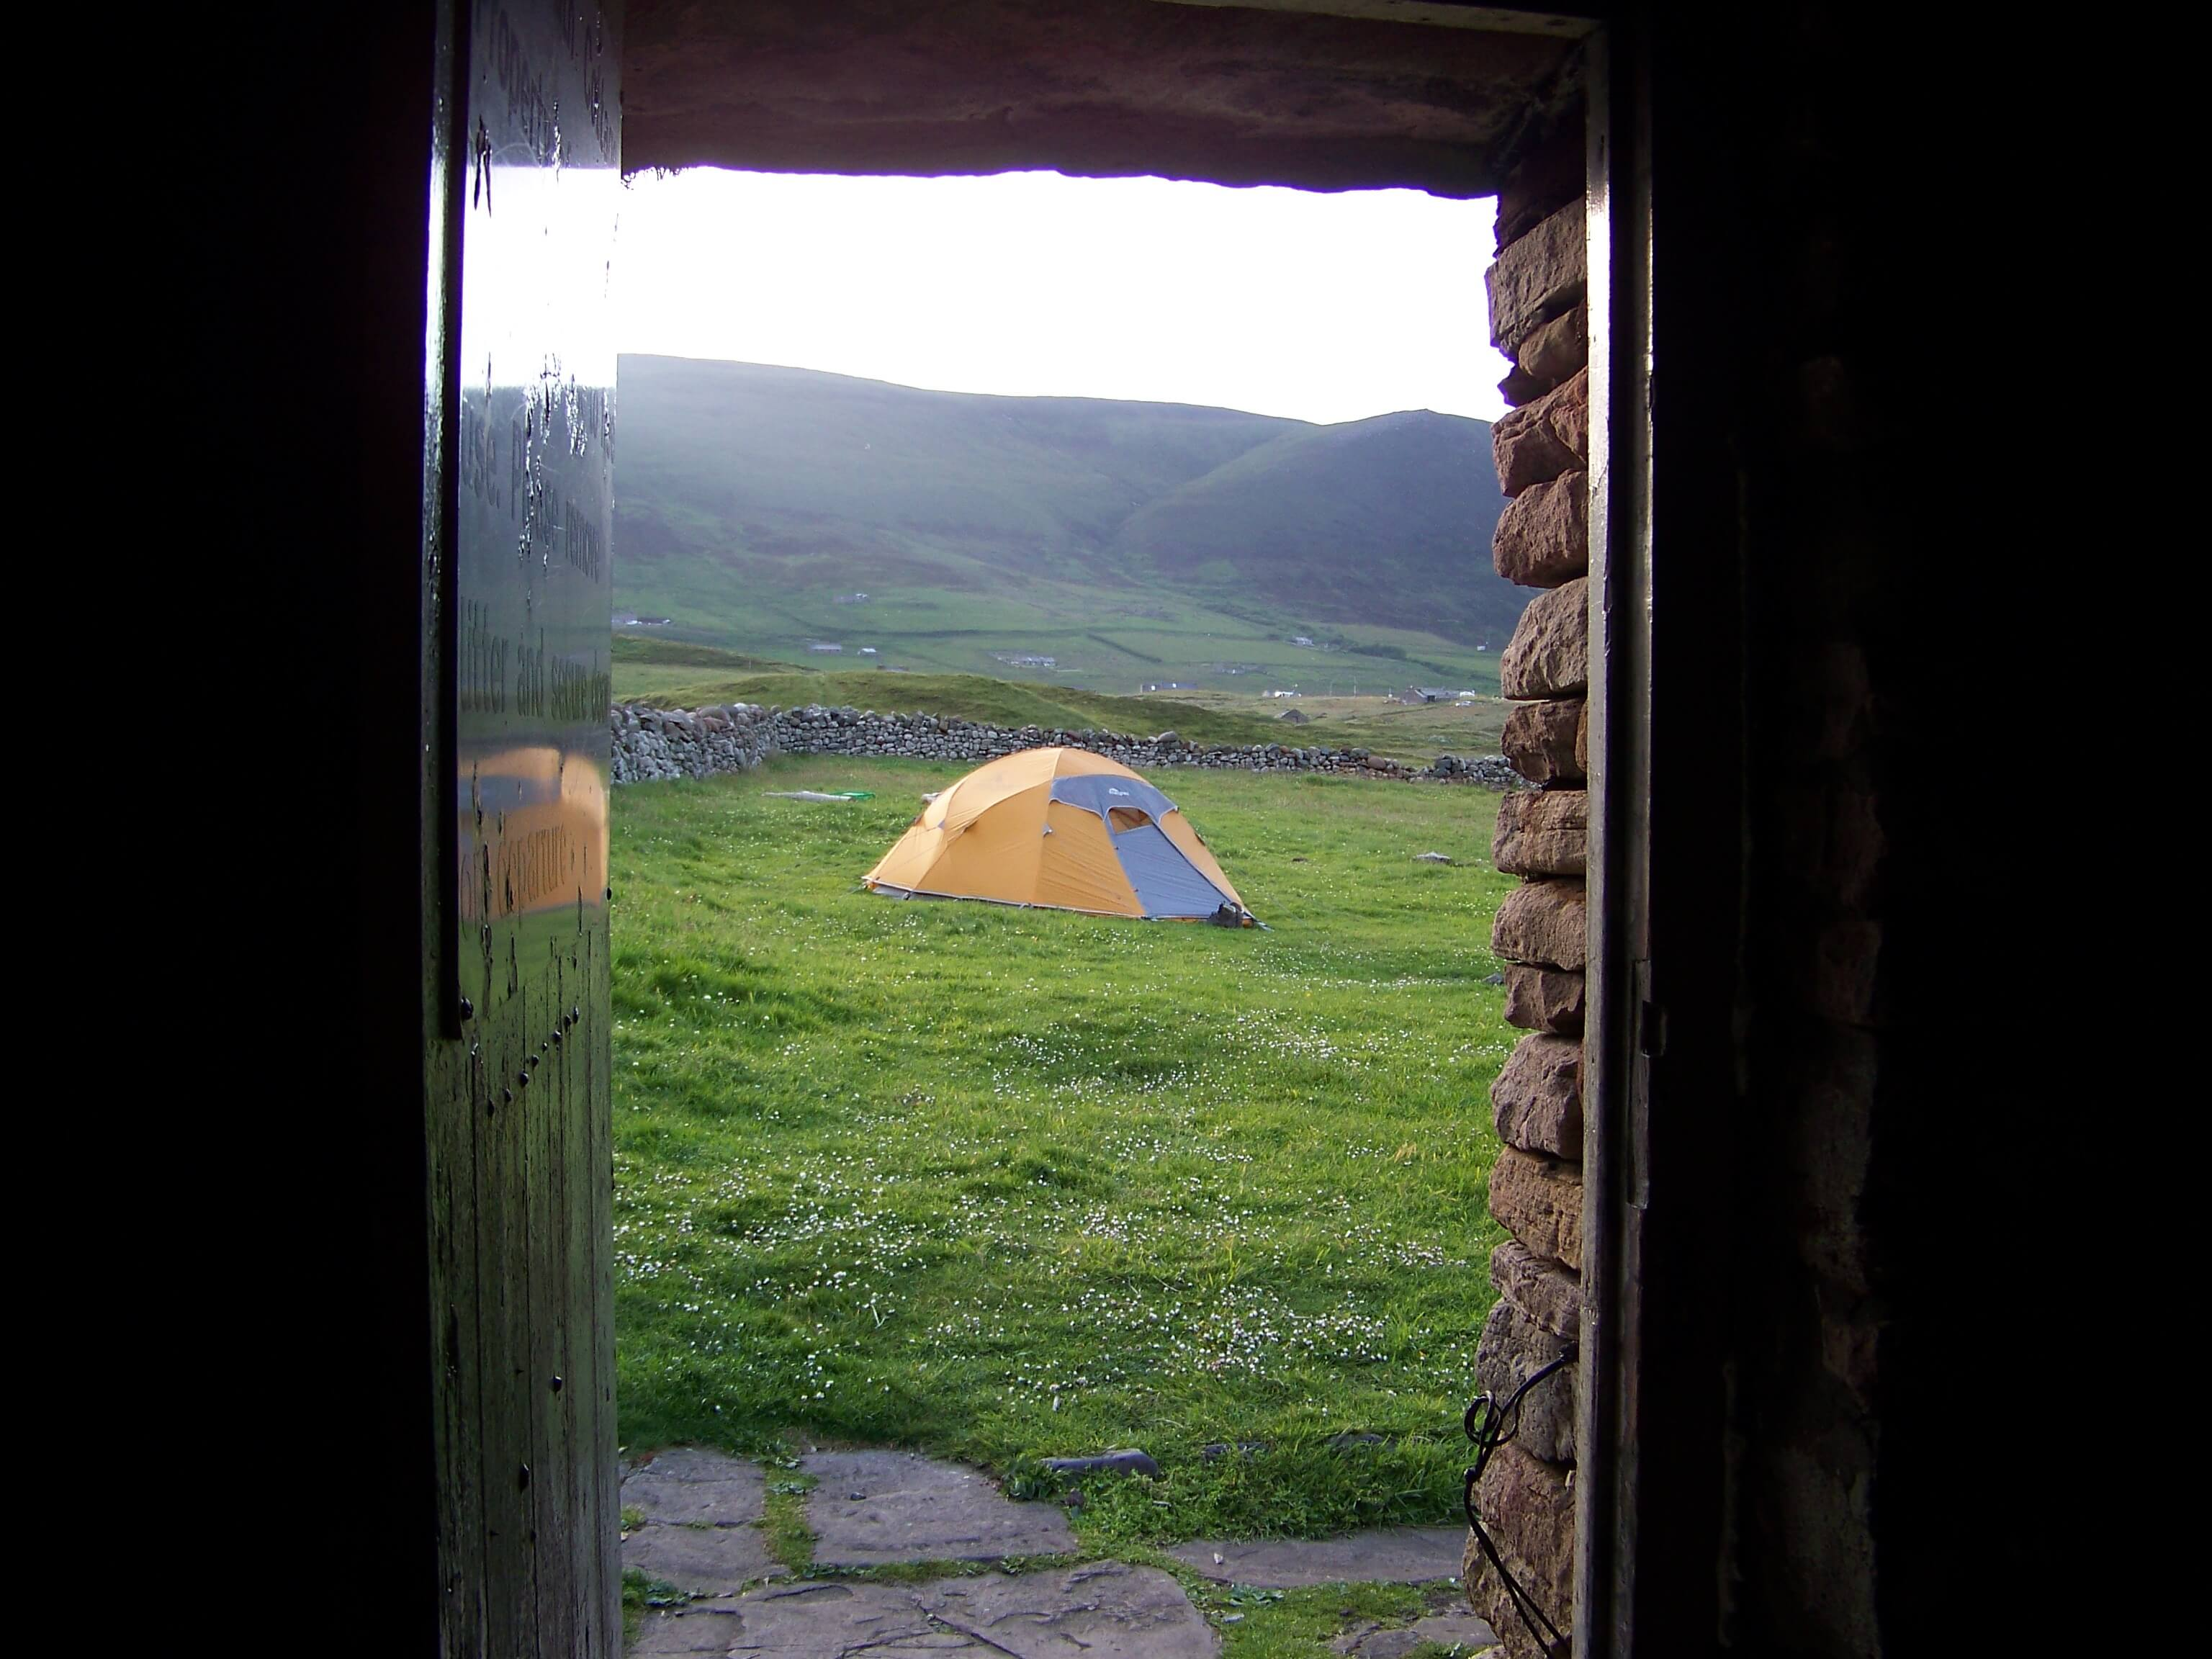 Camper's tent at the bothy, Hoy, Orkney